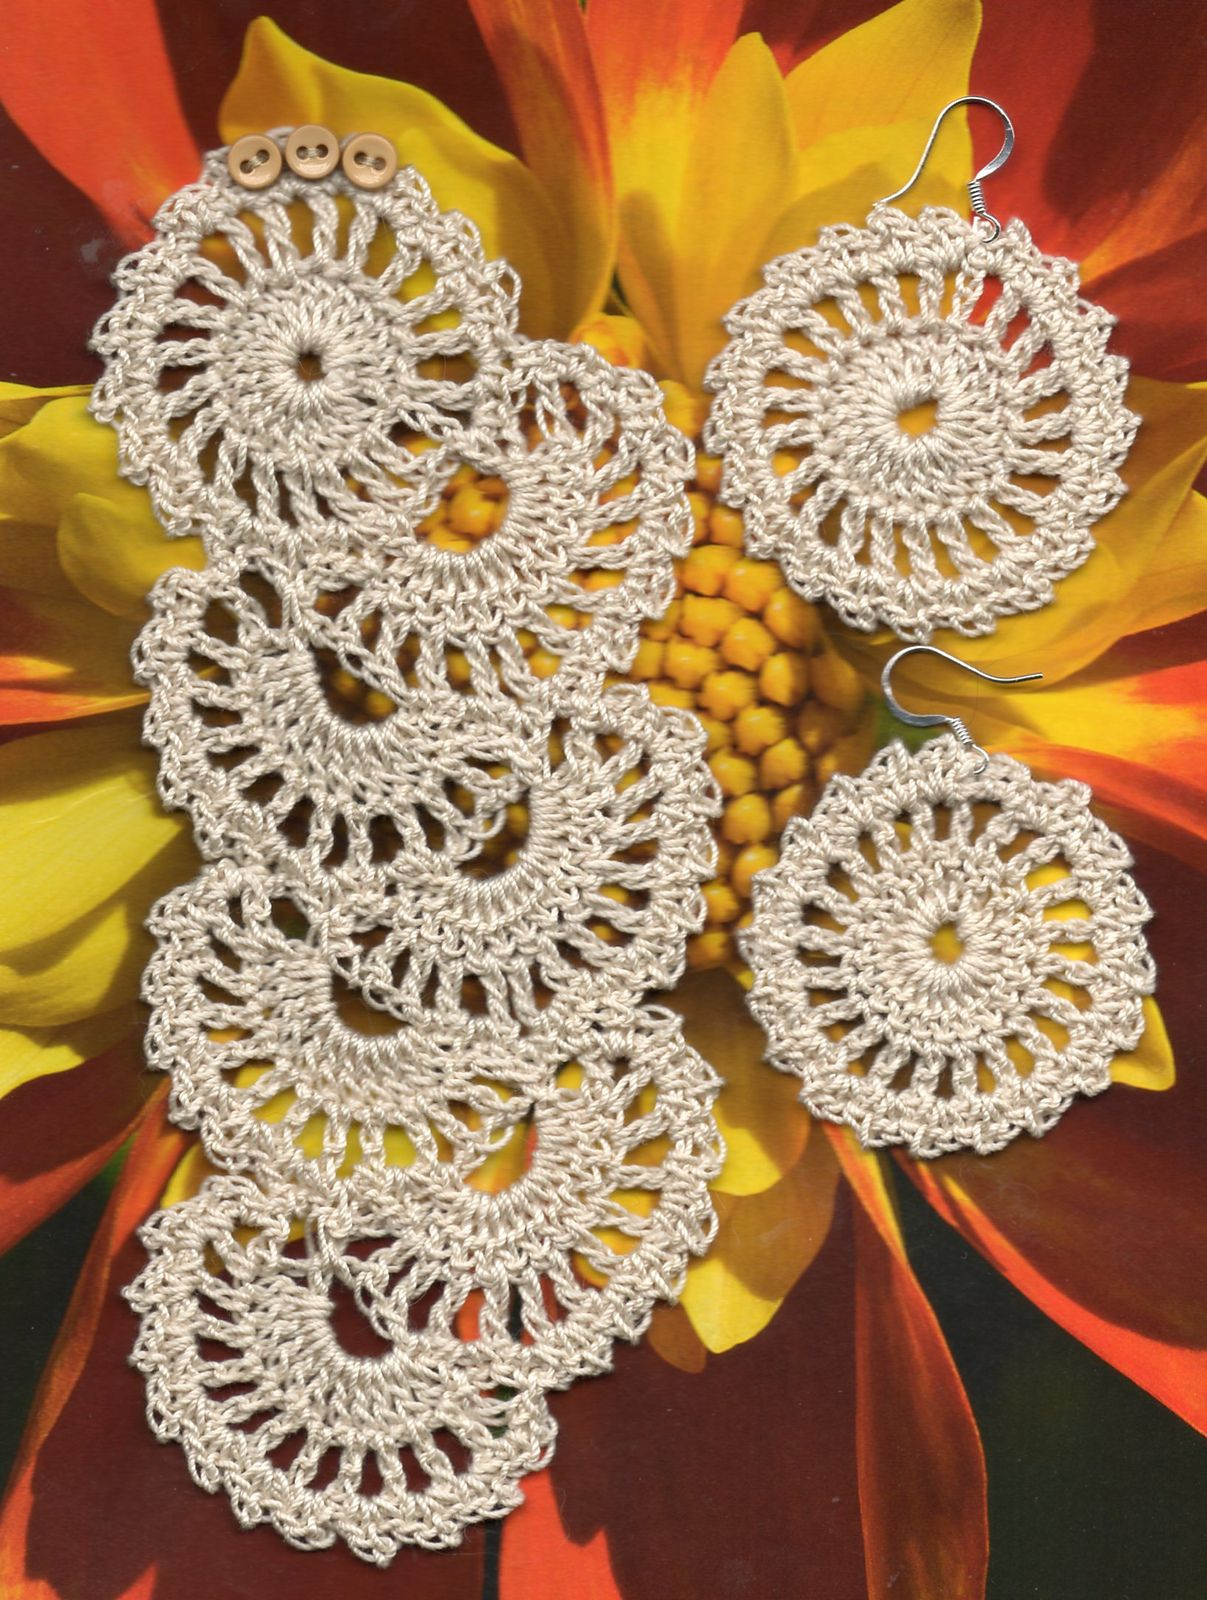 Ravelry: Antique Lace Crochet Bracelet and Earring Set by Spider Mambo... Free pattern!